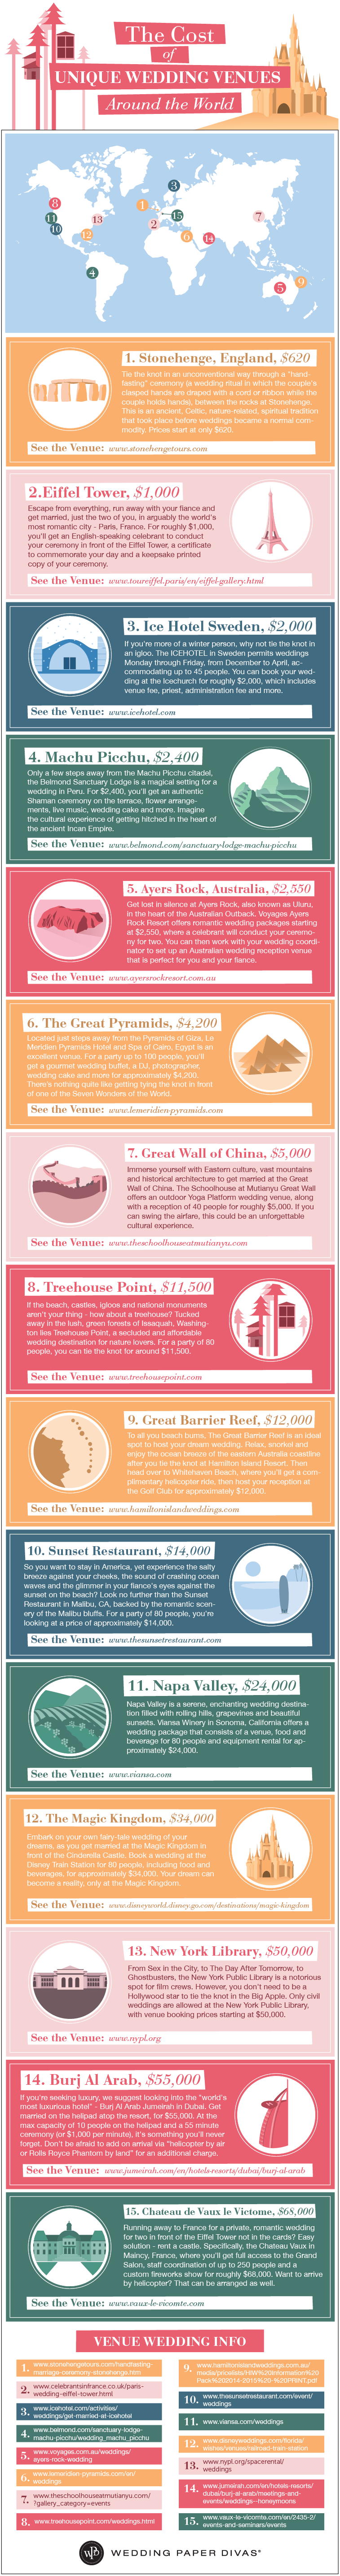 cost of unique wedding venues around the world - how much does it cost to get married in Disneyland? Stonehenge? Scotland? America? Hawaii? Great infographic